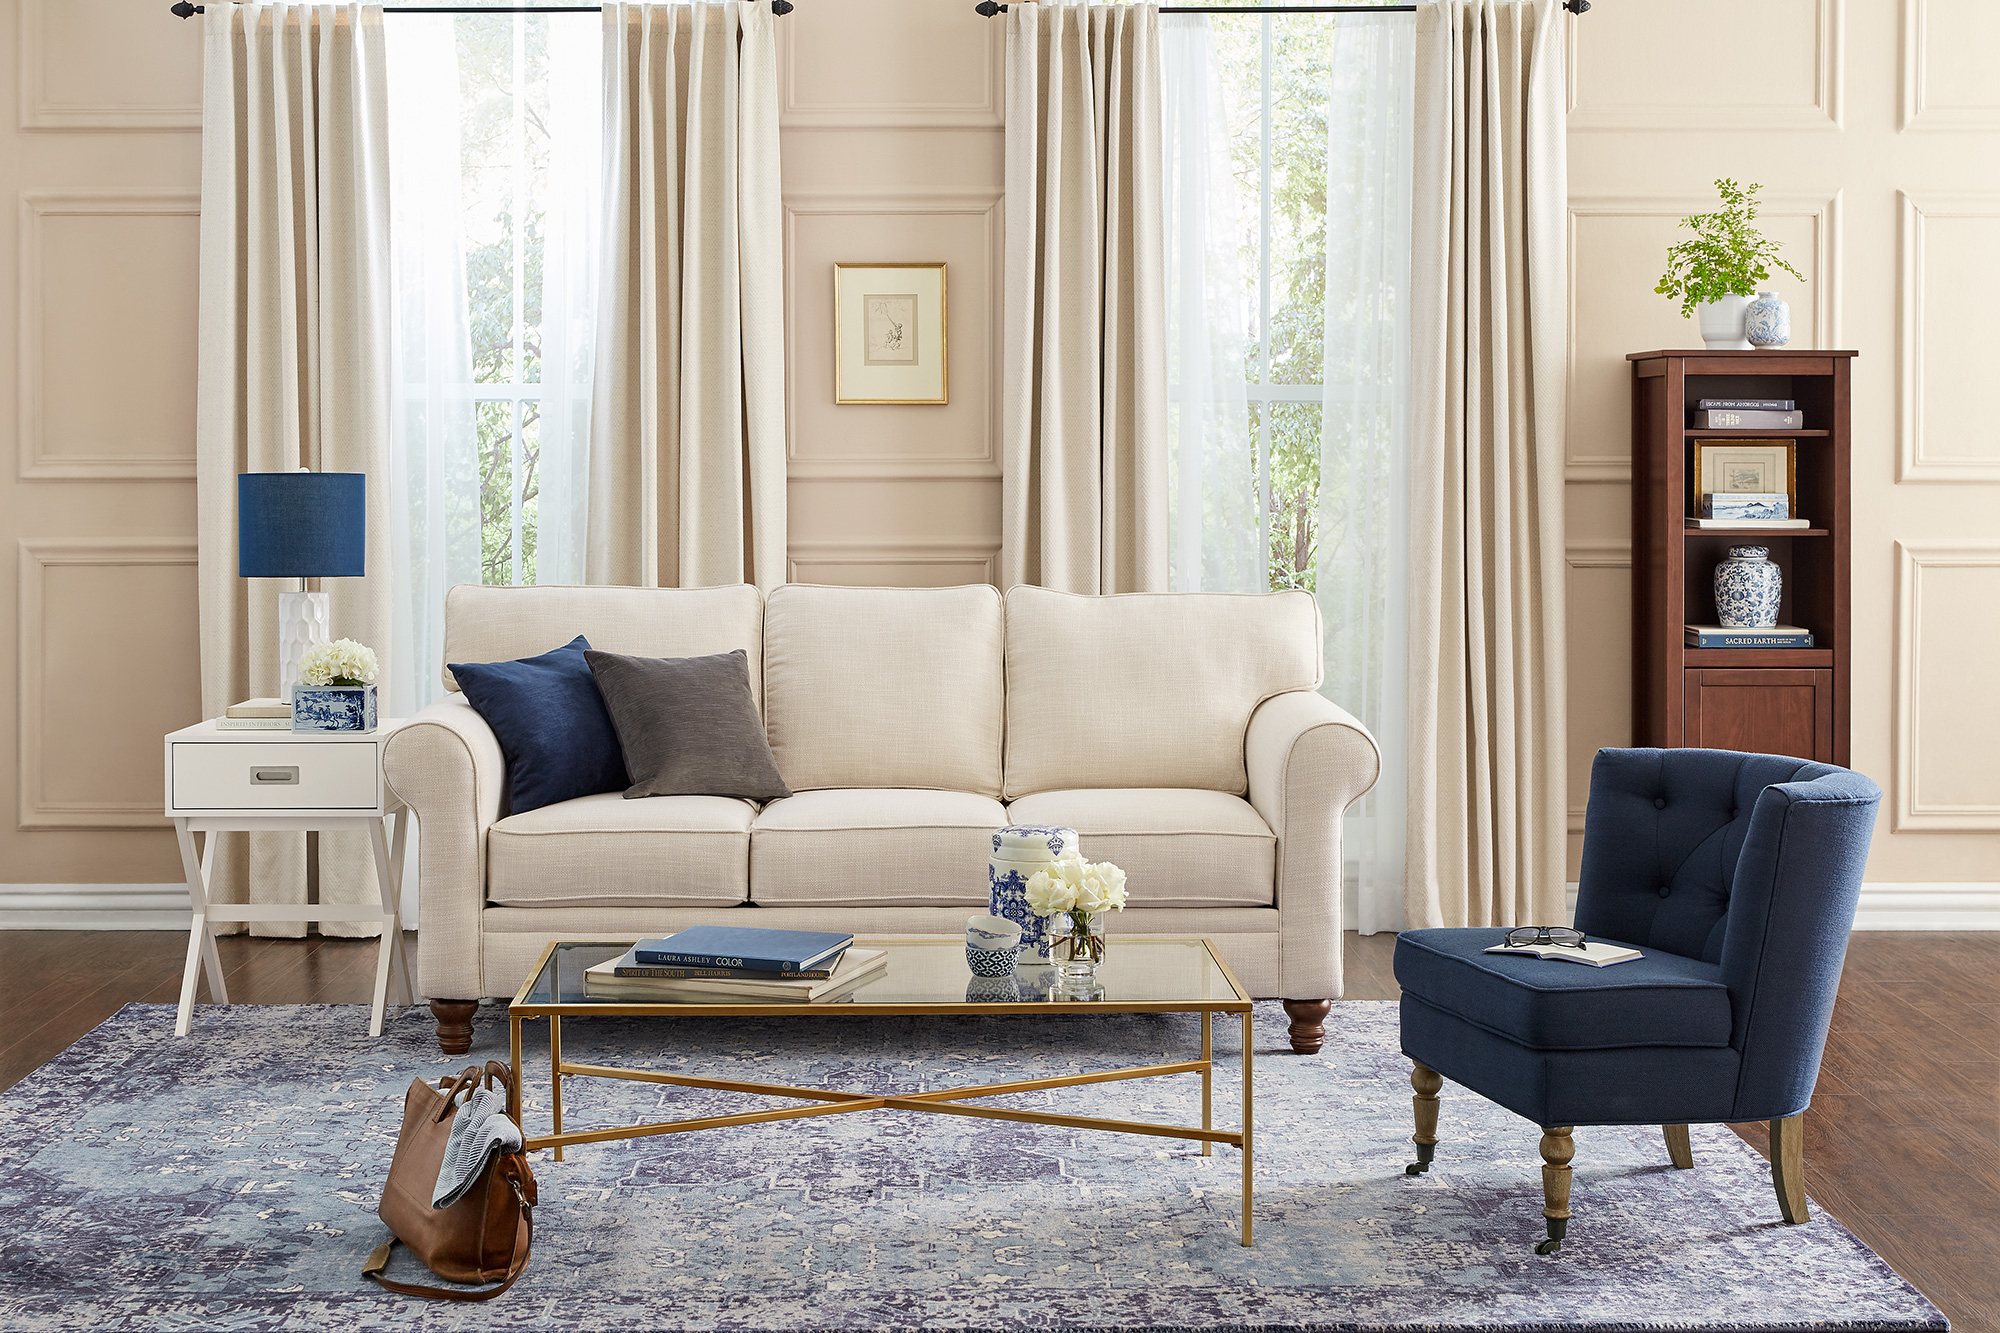 Deals On Crate&barrel – Talia Swivel Chair, Accent Chairs In Revolve Swivel Accent Chairs (Image 4 of 20)